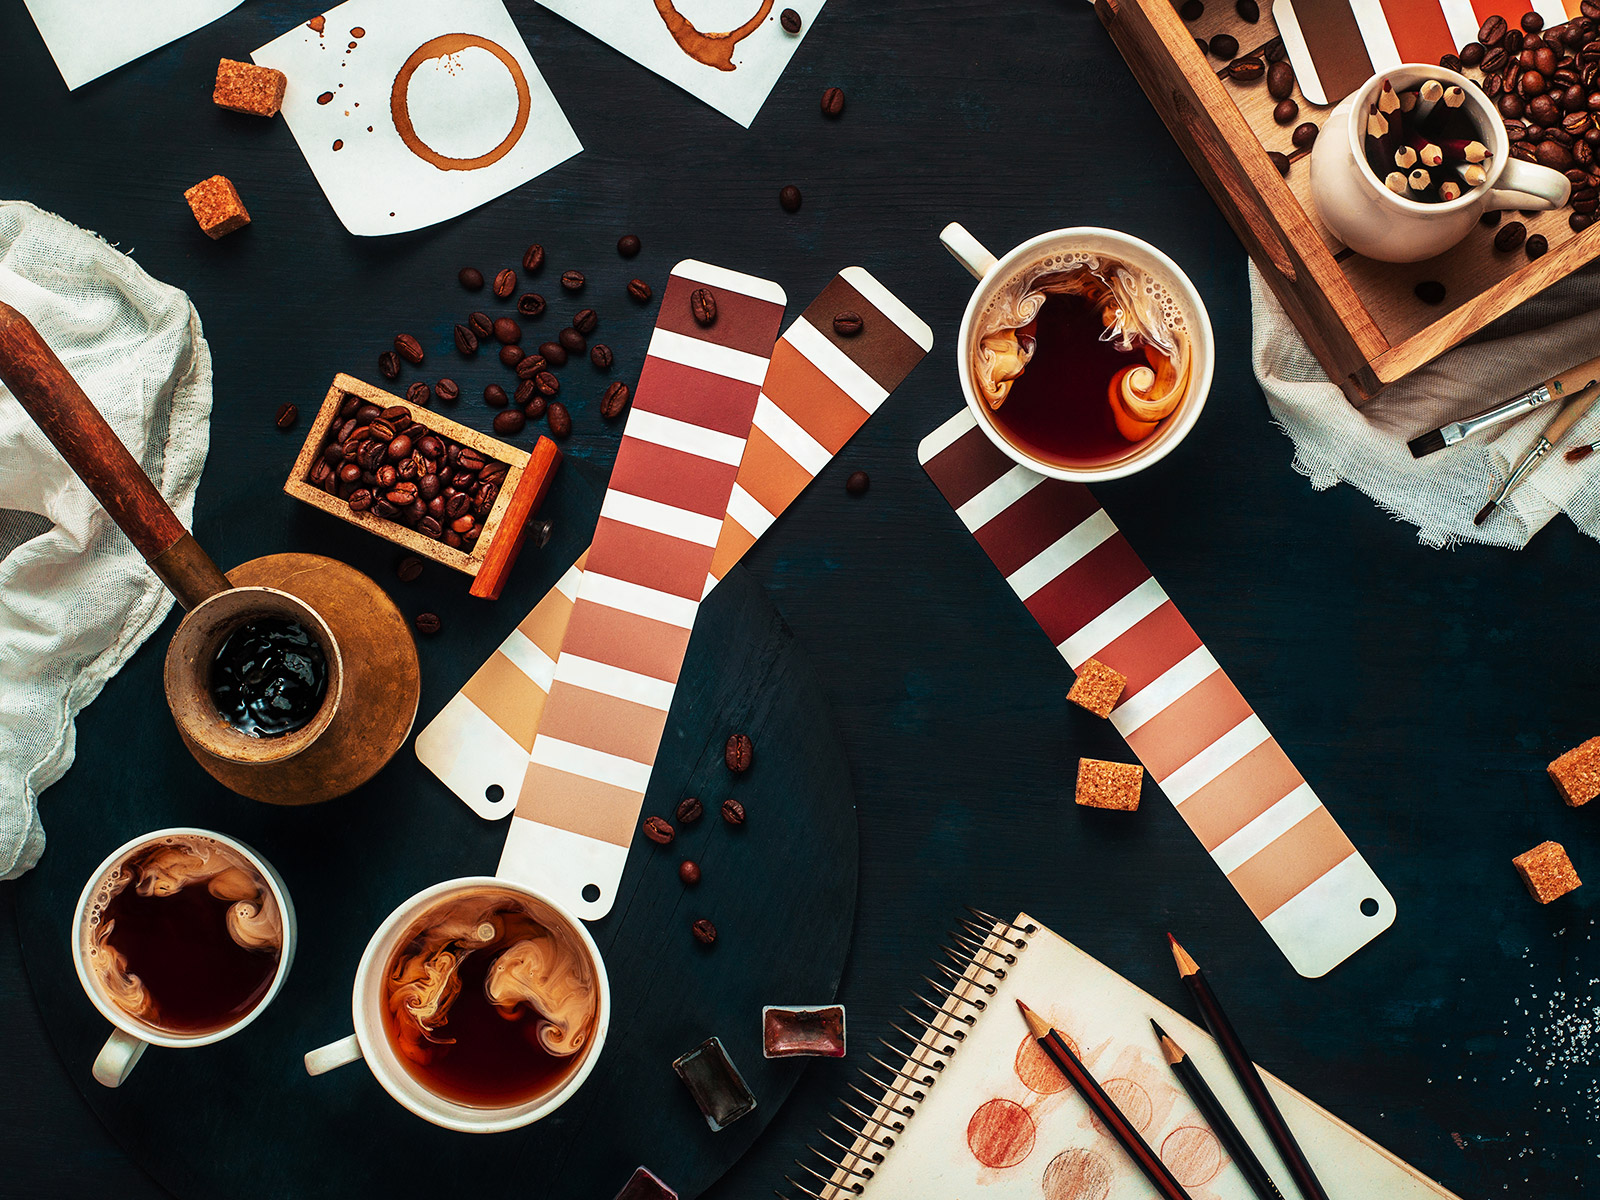 pantone color book and food to match it